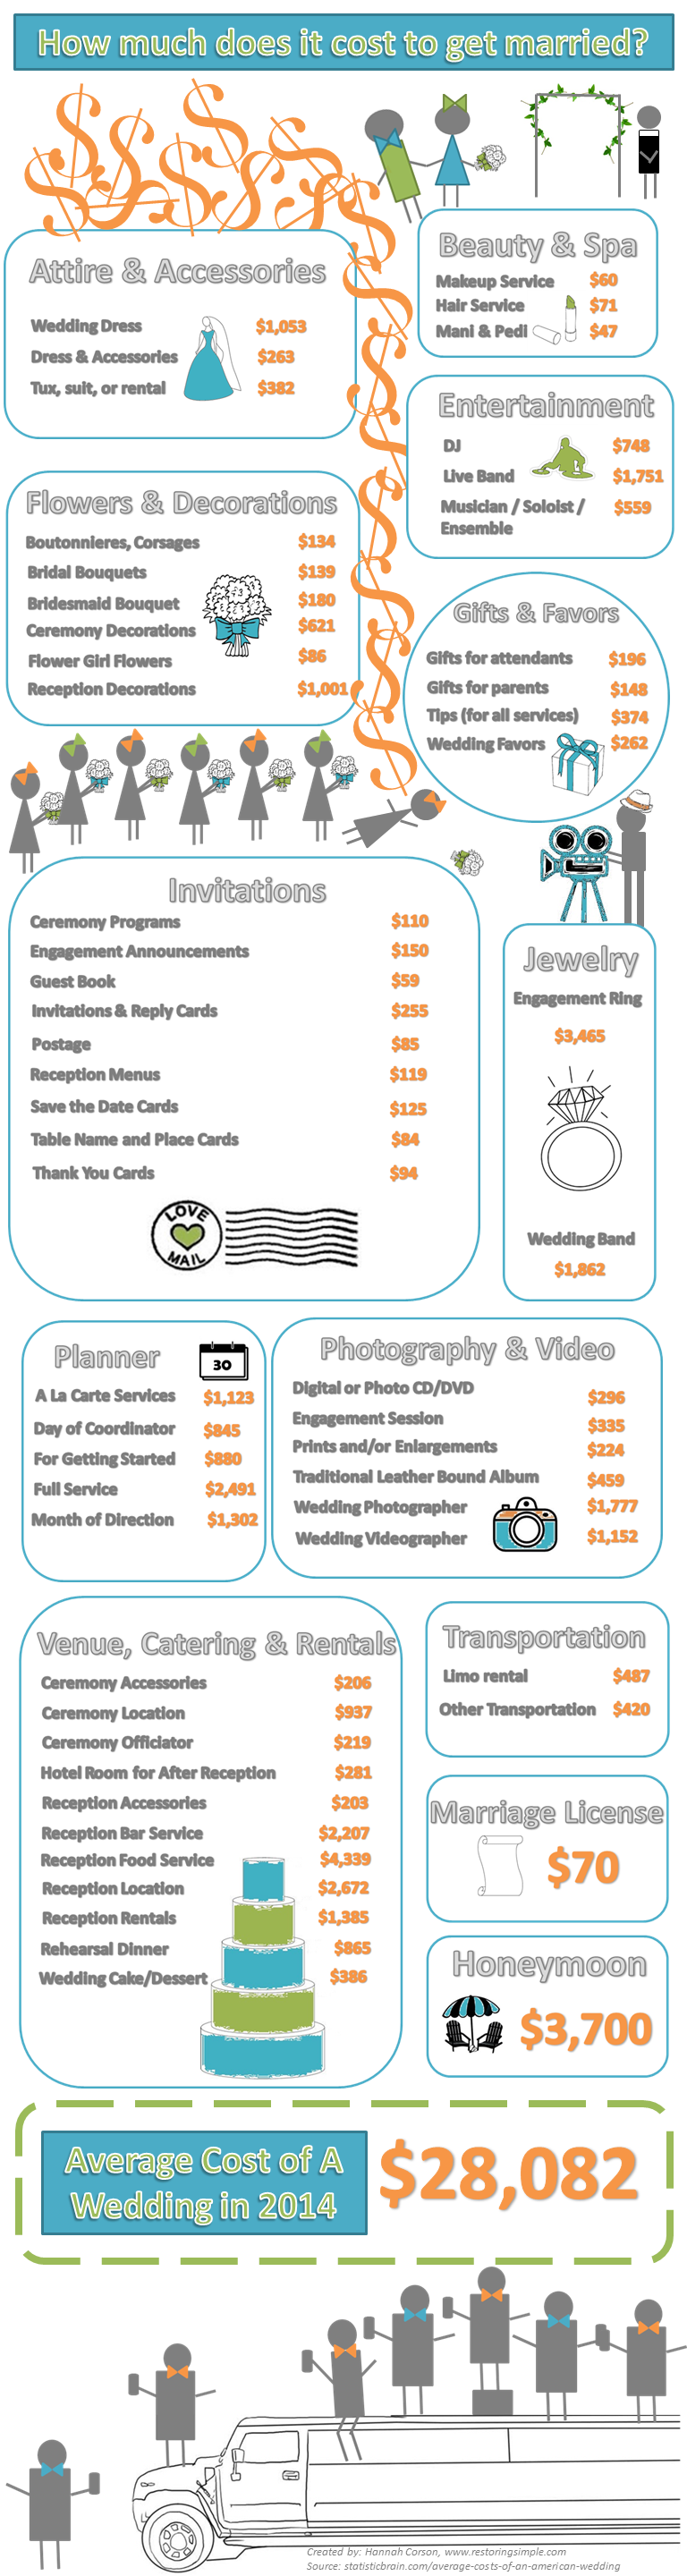 average wedding cost in 2014